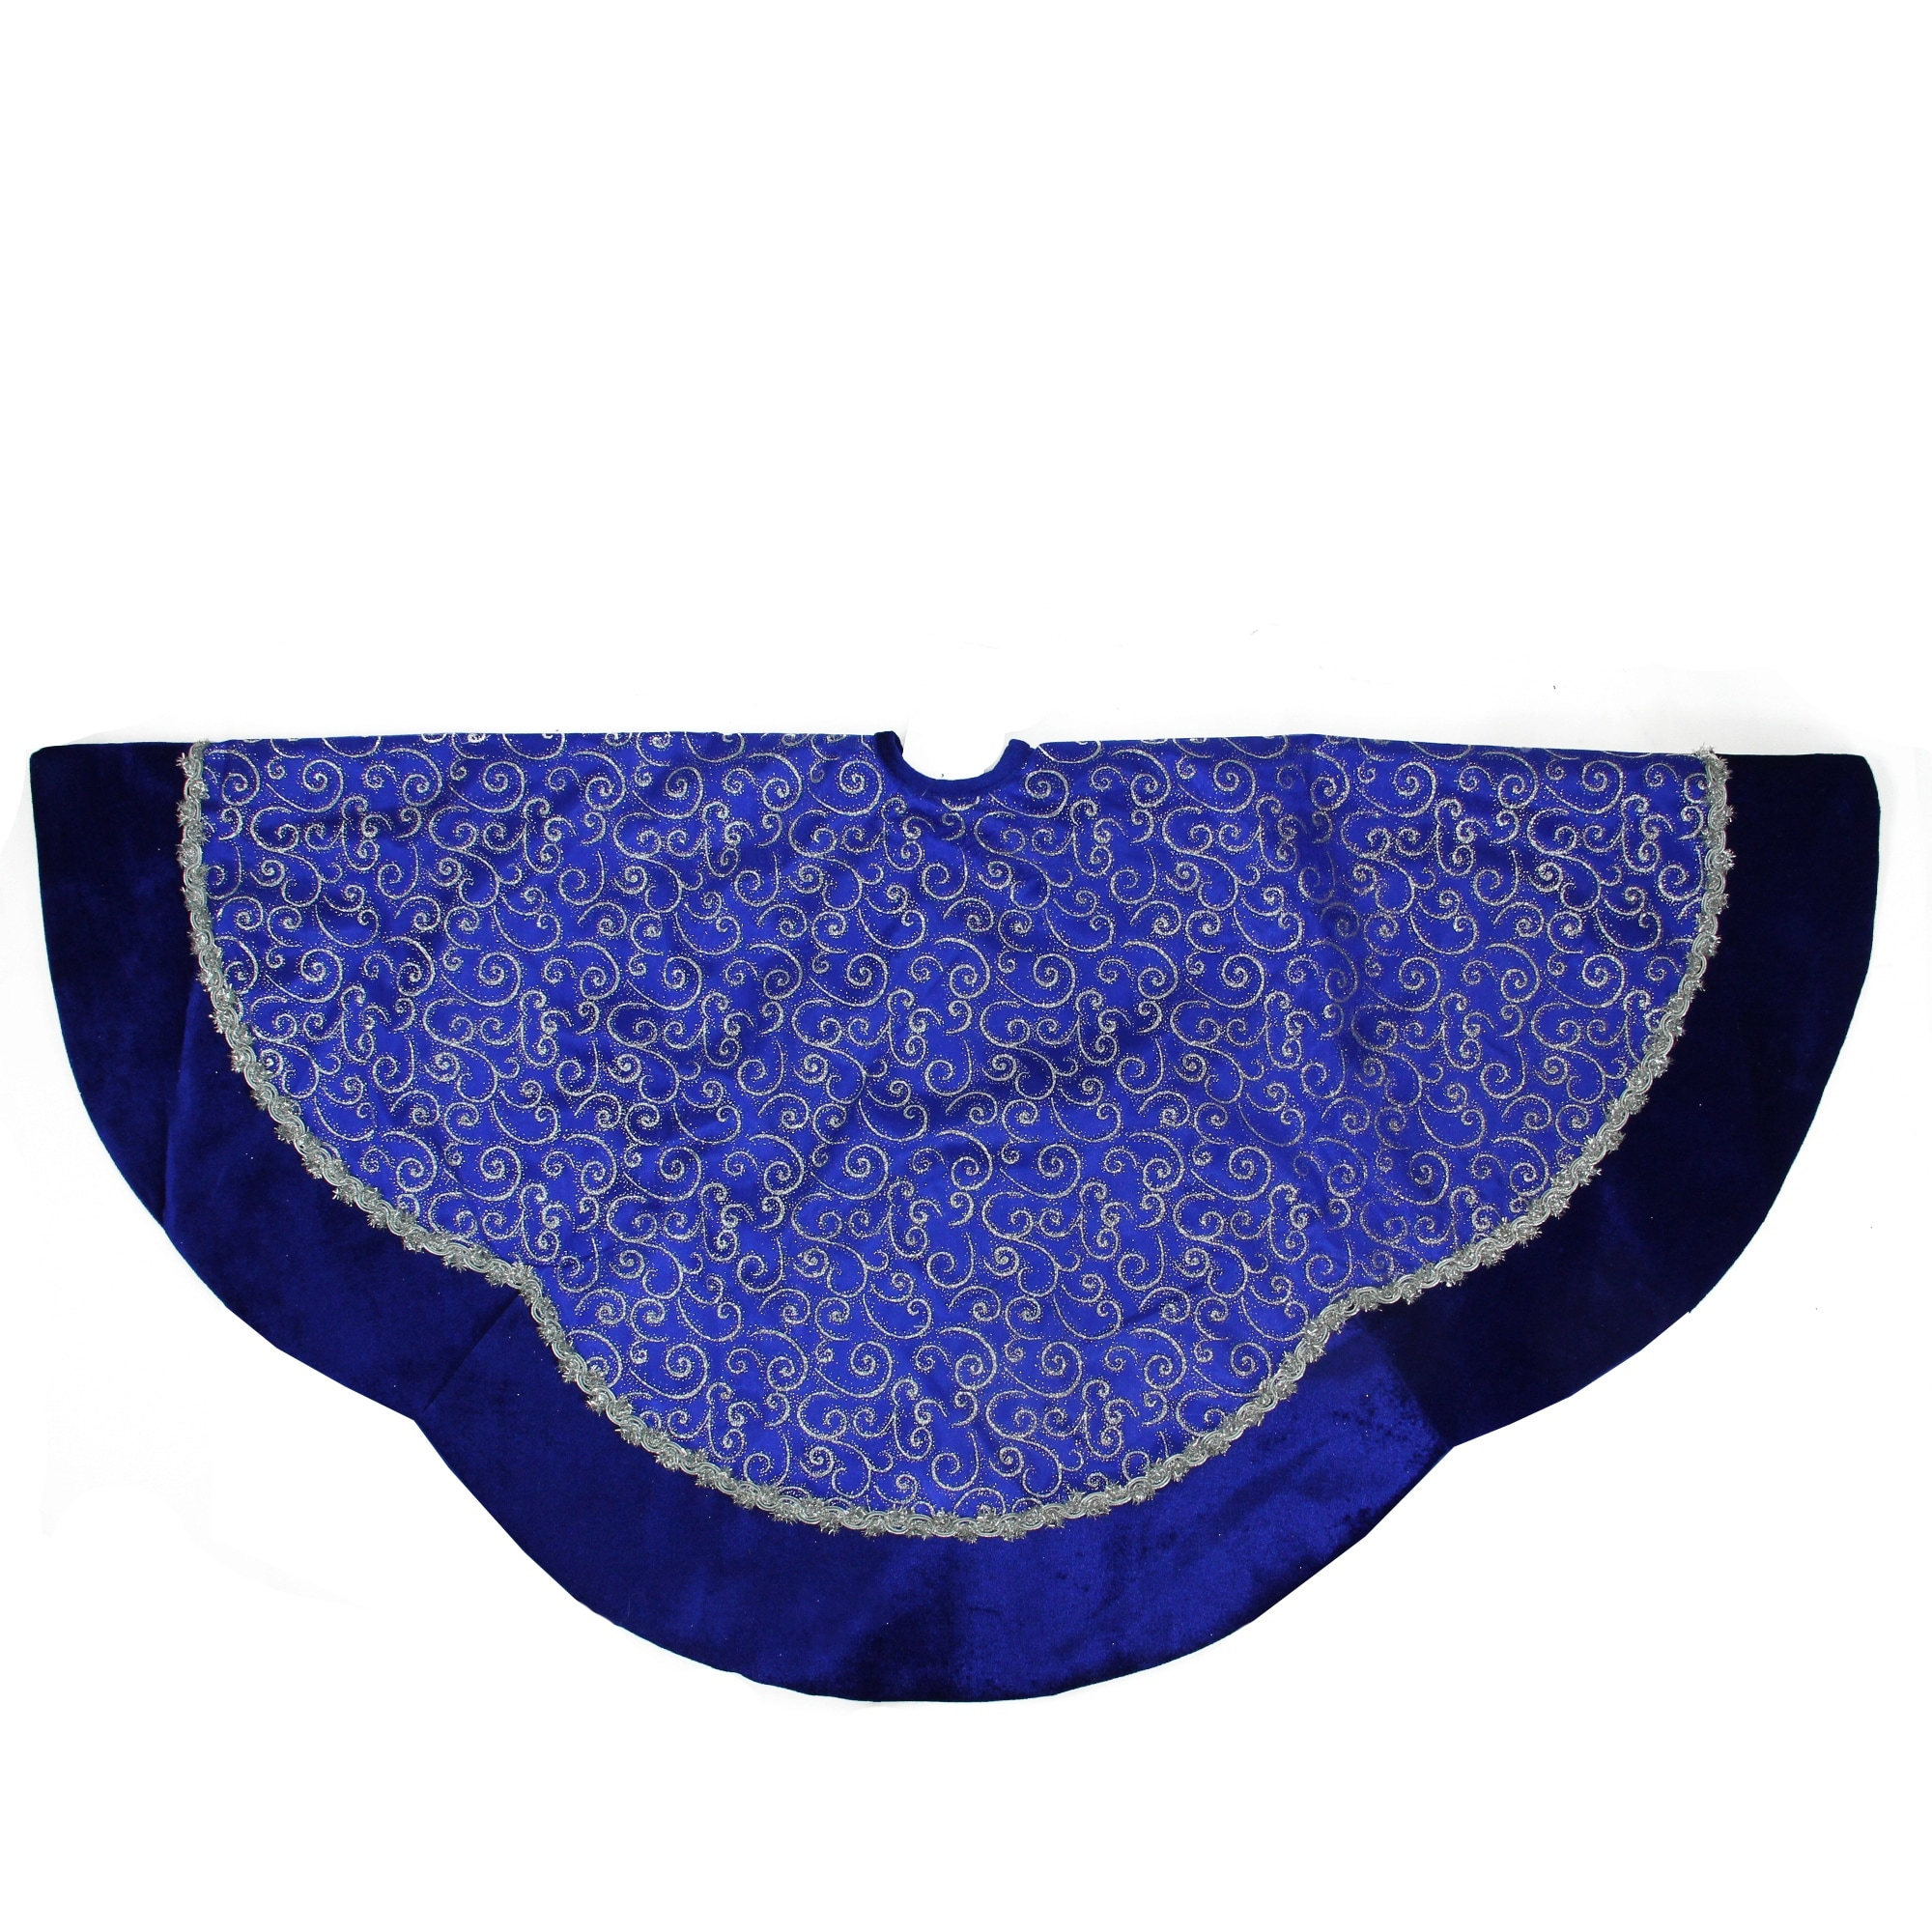 48 Royal Blue And Silver Swirl Christmas Tree Skirt With Scalloped Trim Overstock 17364463